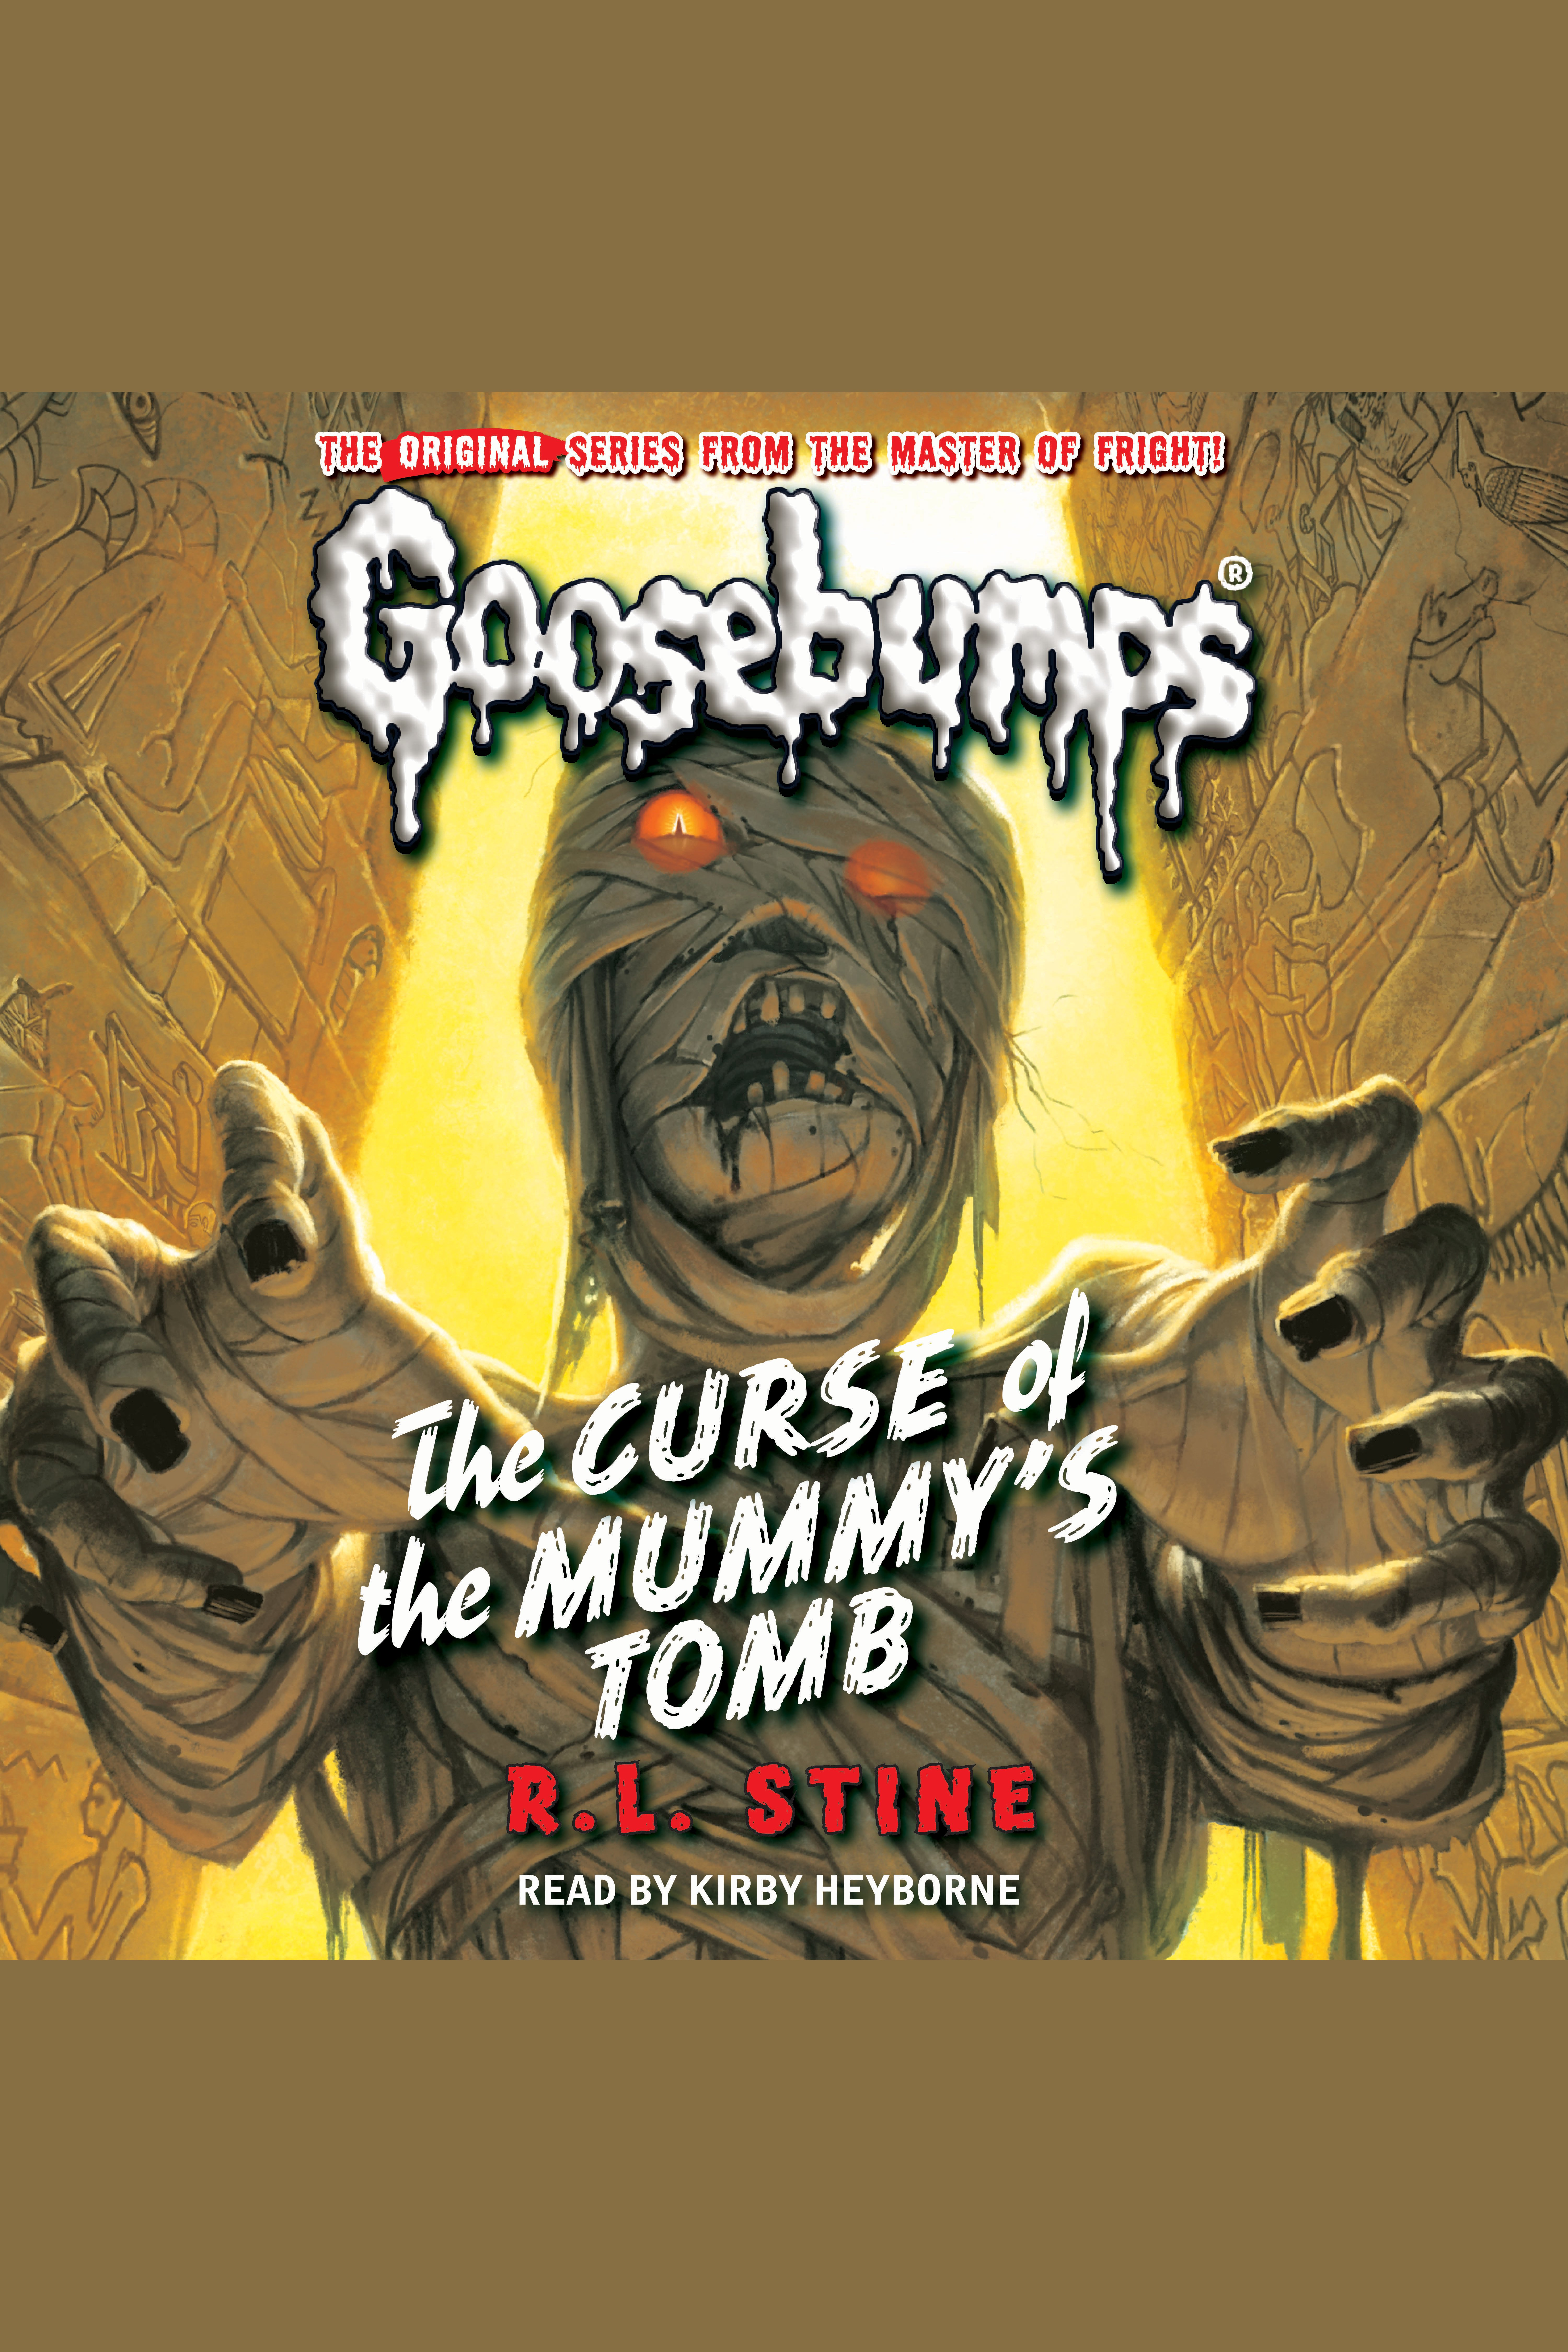 Classic Goosebumps - The Curse of the Mummy's Tomb The Curse of the Mummy's Tomb